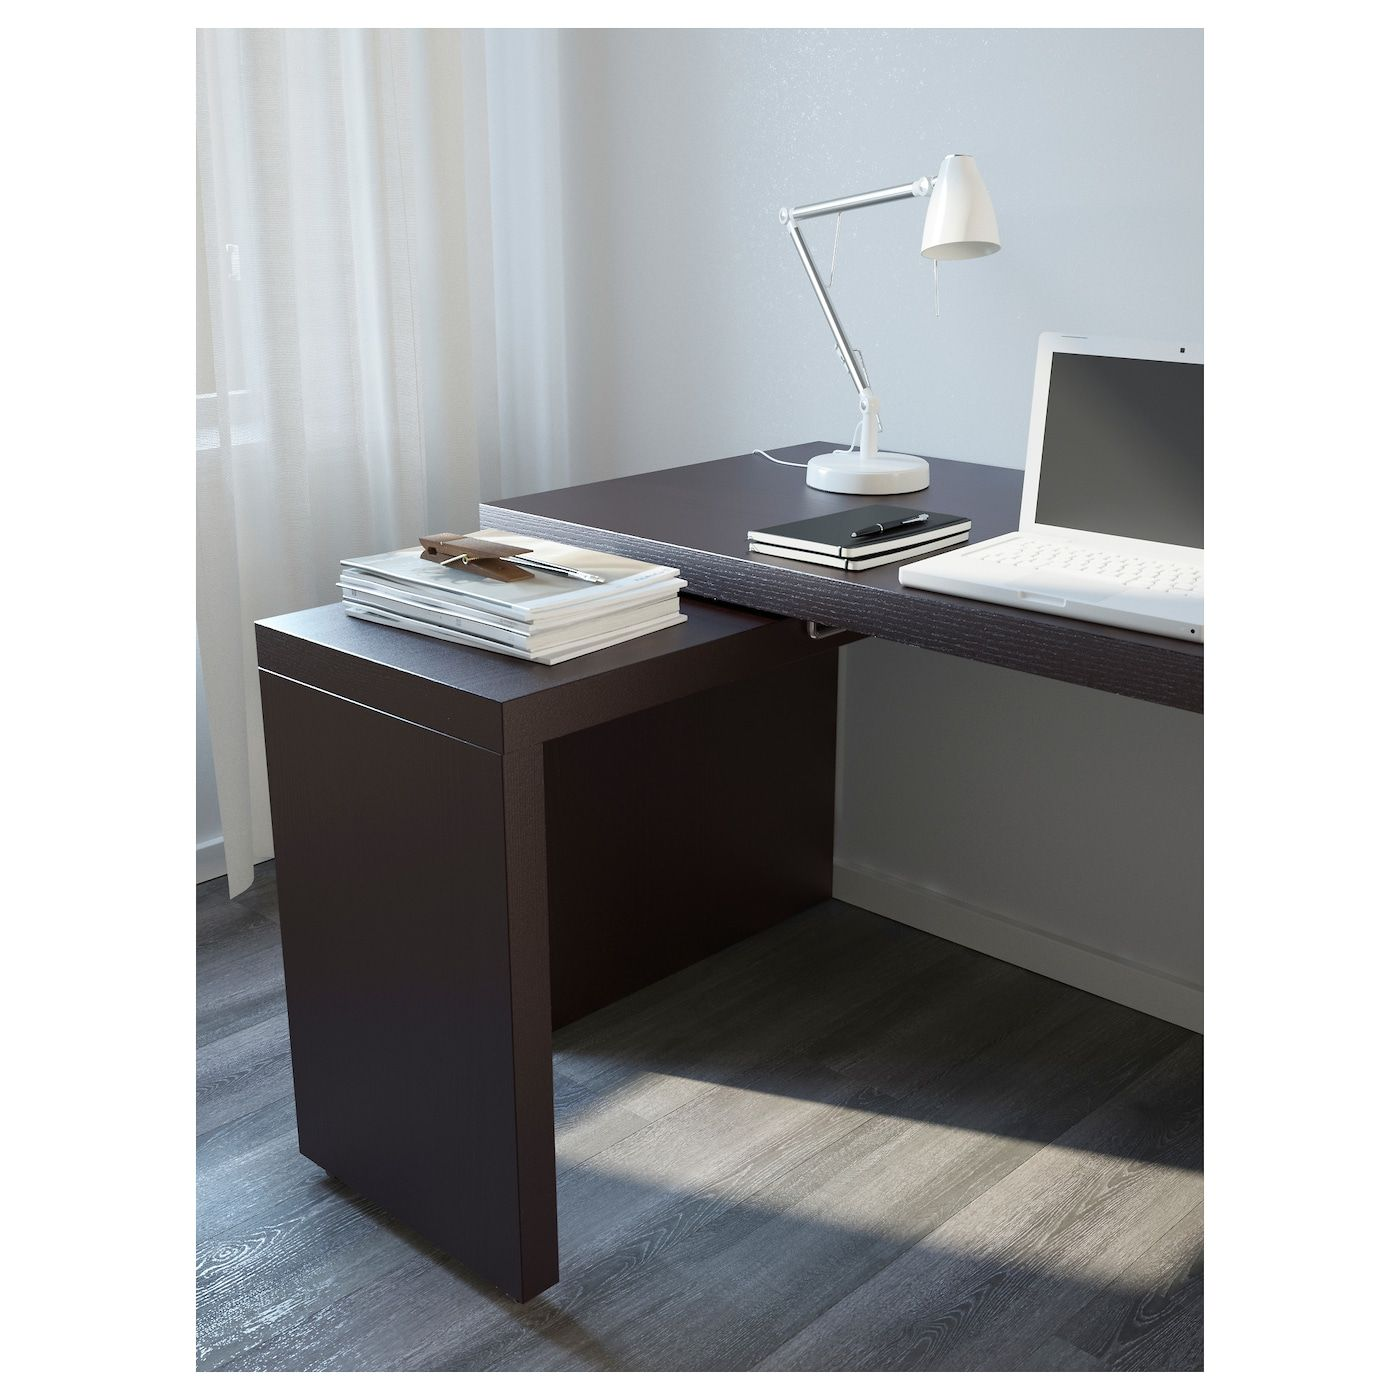 Malm Desk With Pull Out Panel Black Brown 59 1 2x25 5 8 Ikea Home Office Furniture White Paneling Ikea Malm Desk